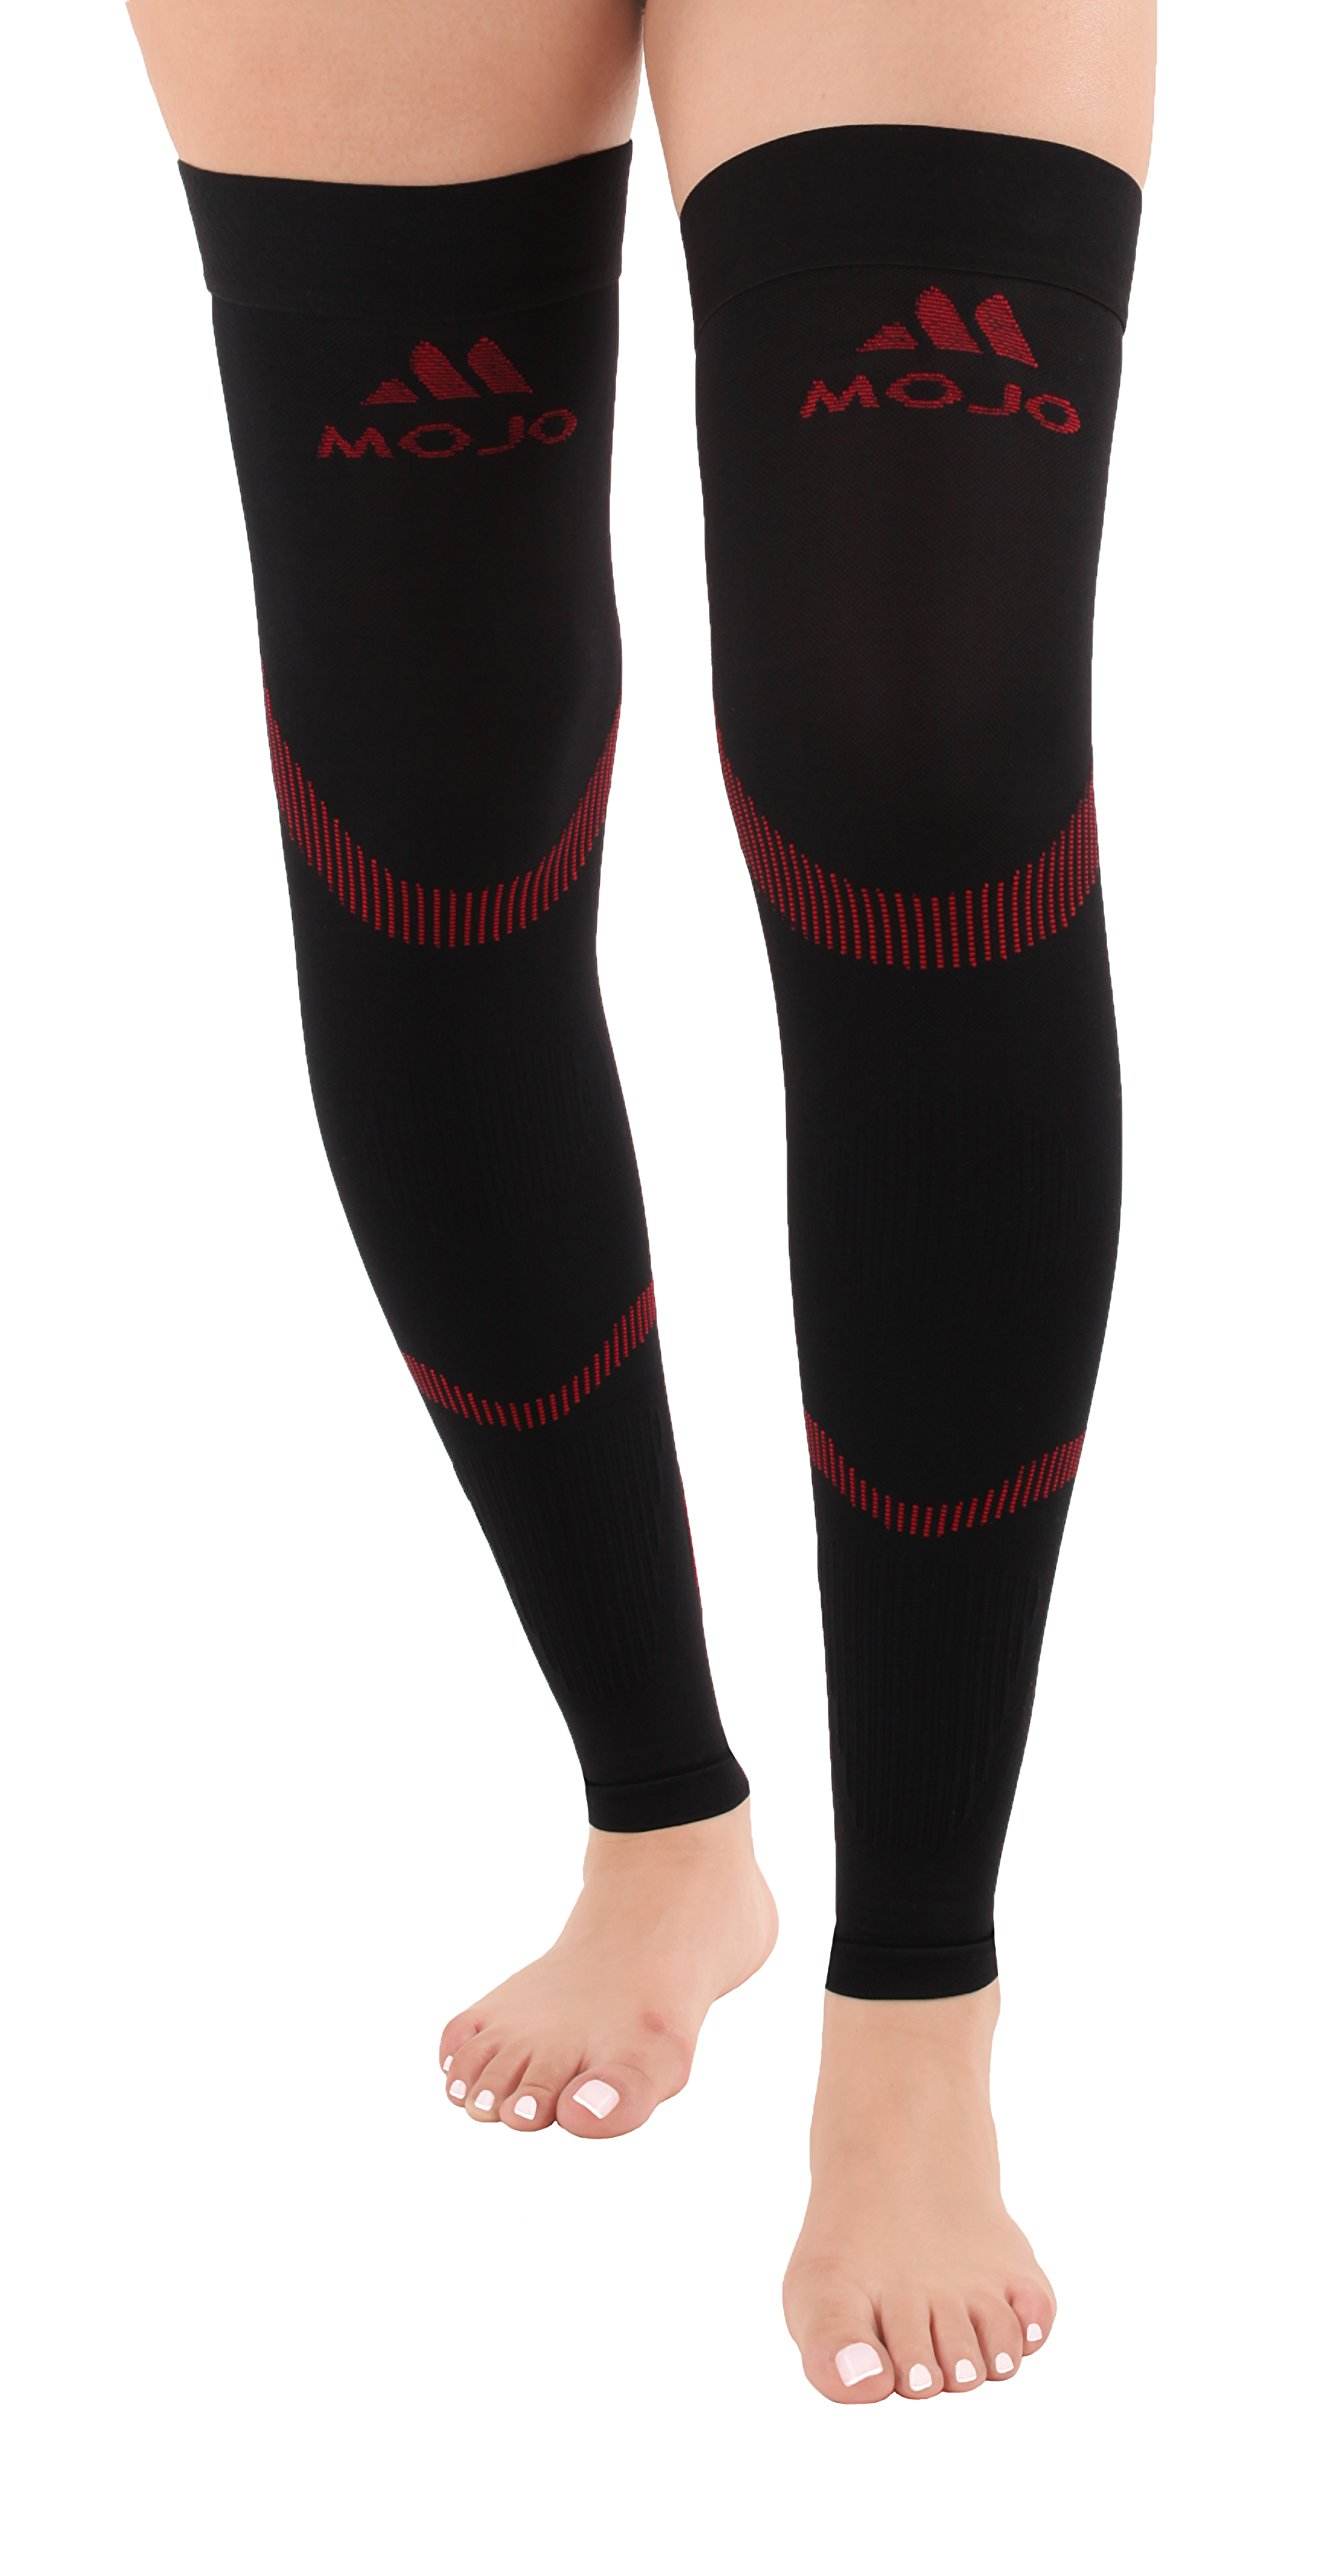 Mojo Compression Stockings - Graduated Compression Thigh Leg Sleeve - 20-30mmhg Medical Support - Thigh Hi Recovery Garment Treats Hamstring, Shin Splints, Quad Injuries, Black/Red Size: Large A609 by Mojo Compression socks